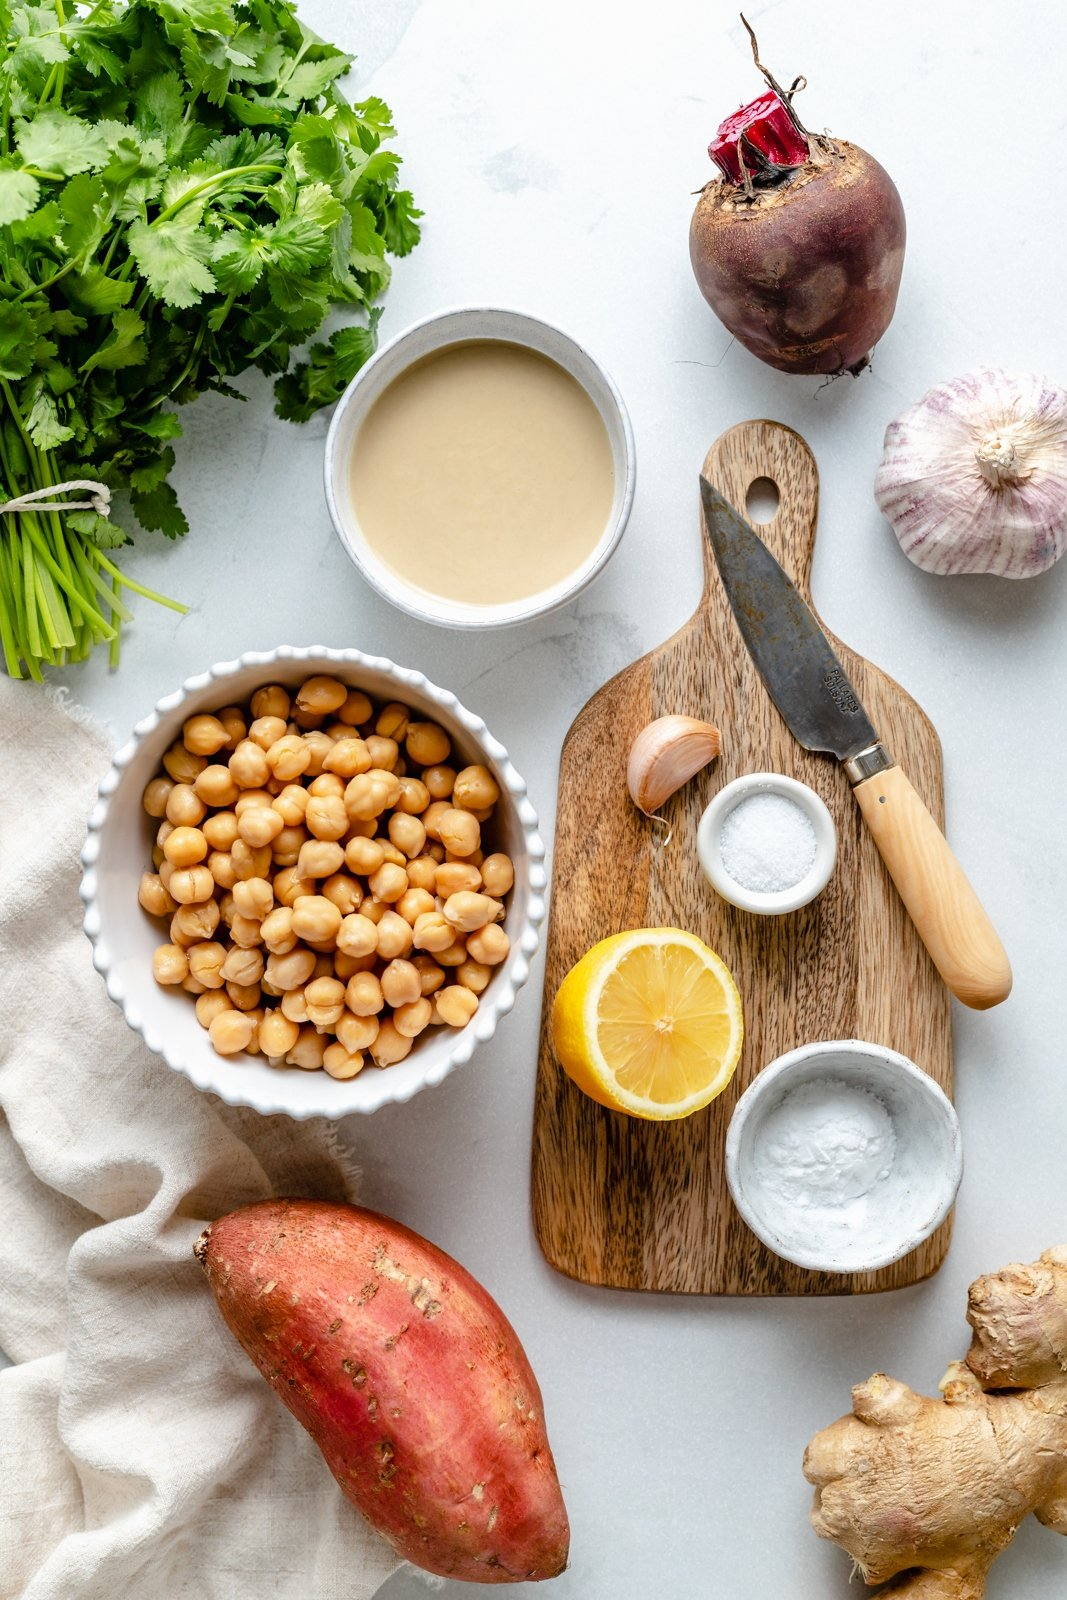 ingredients for homemade hummus on a grey board